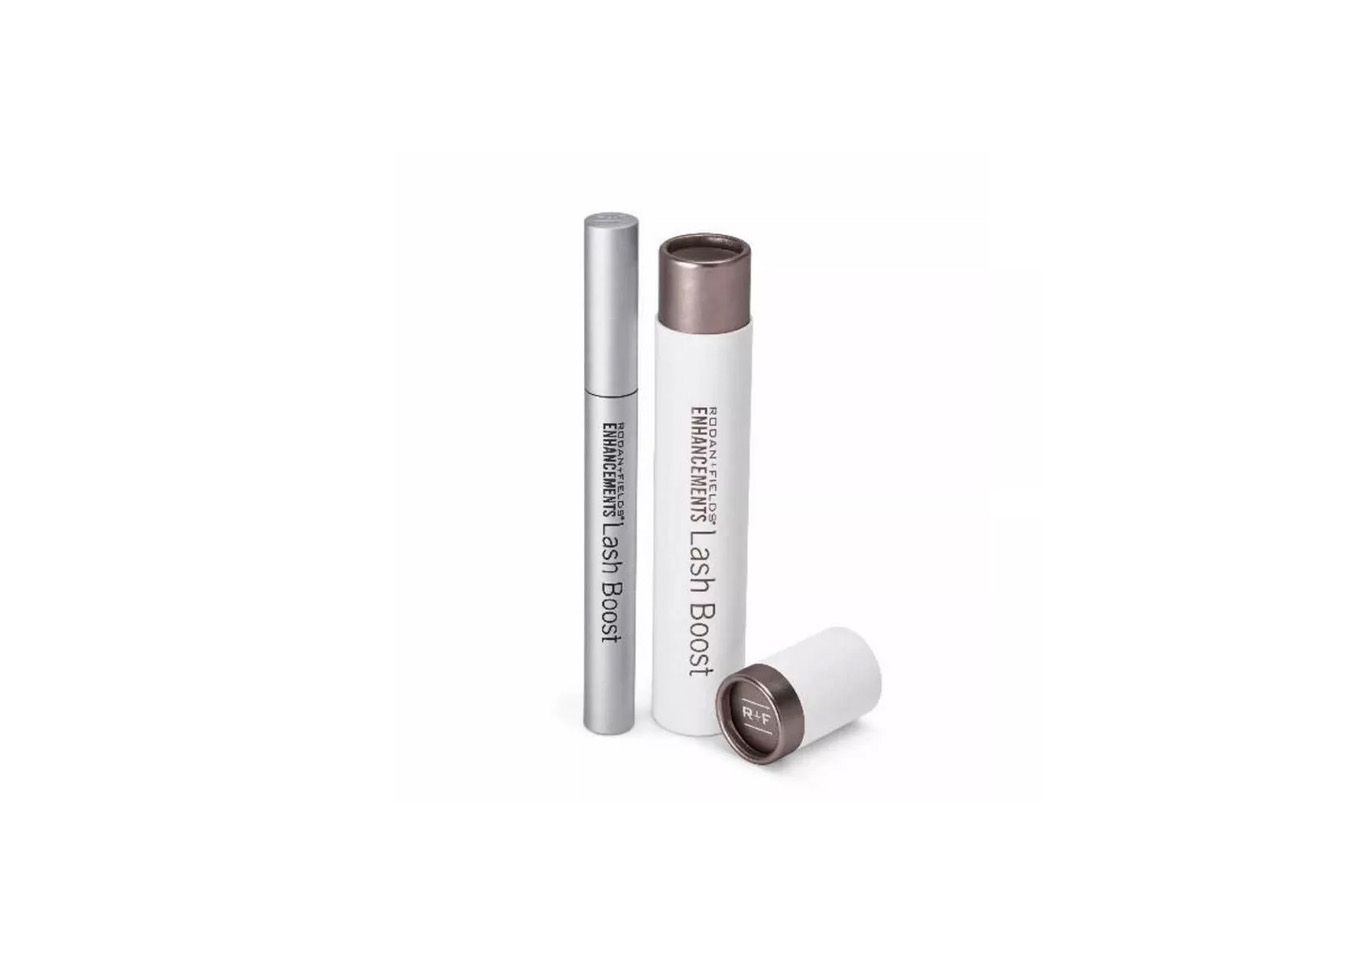 Rodan + Fields Enhancement Lash Boost